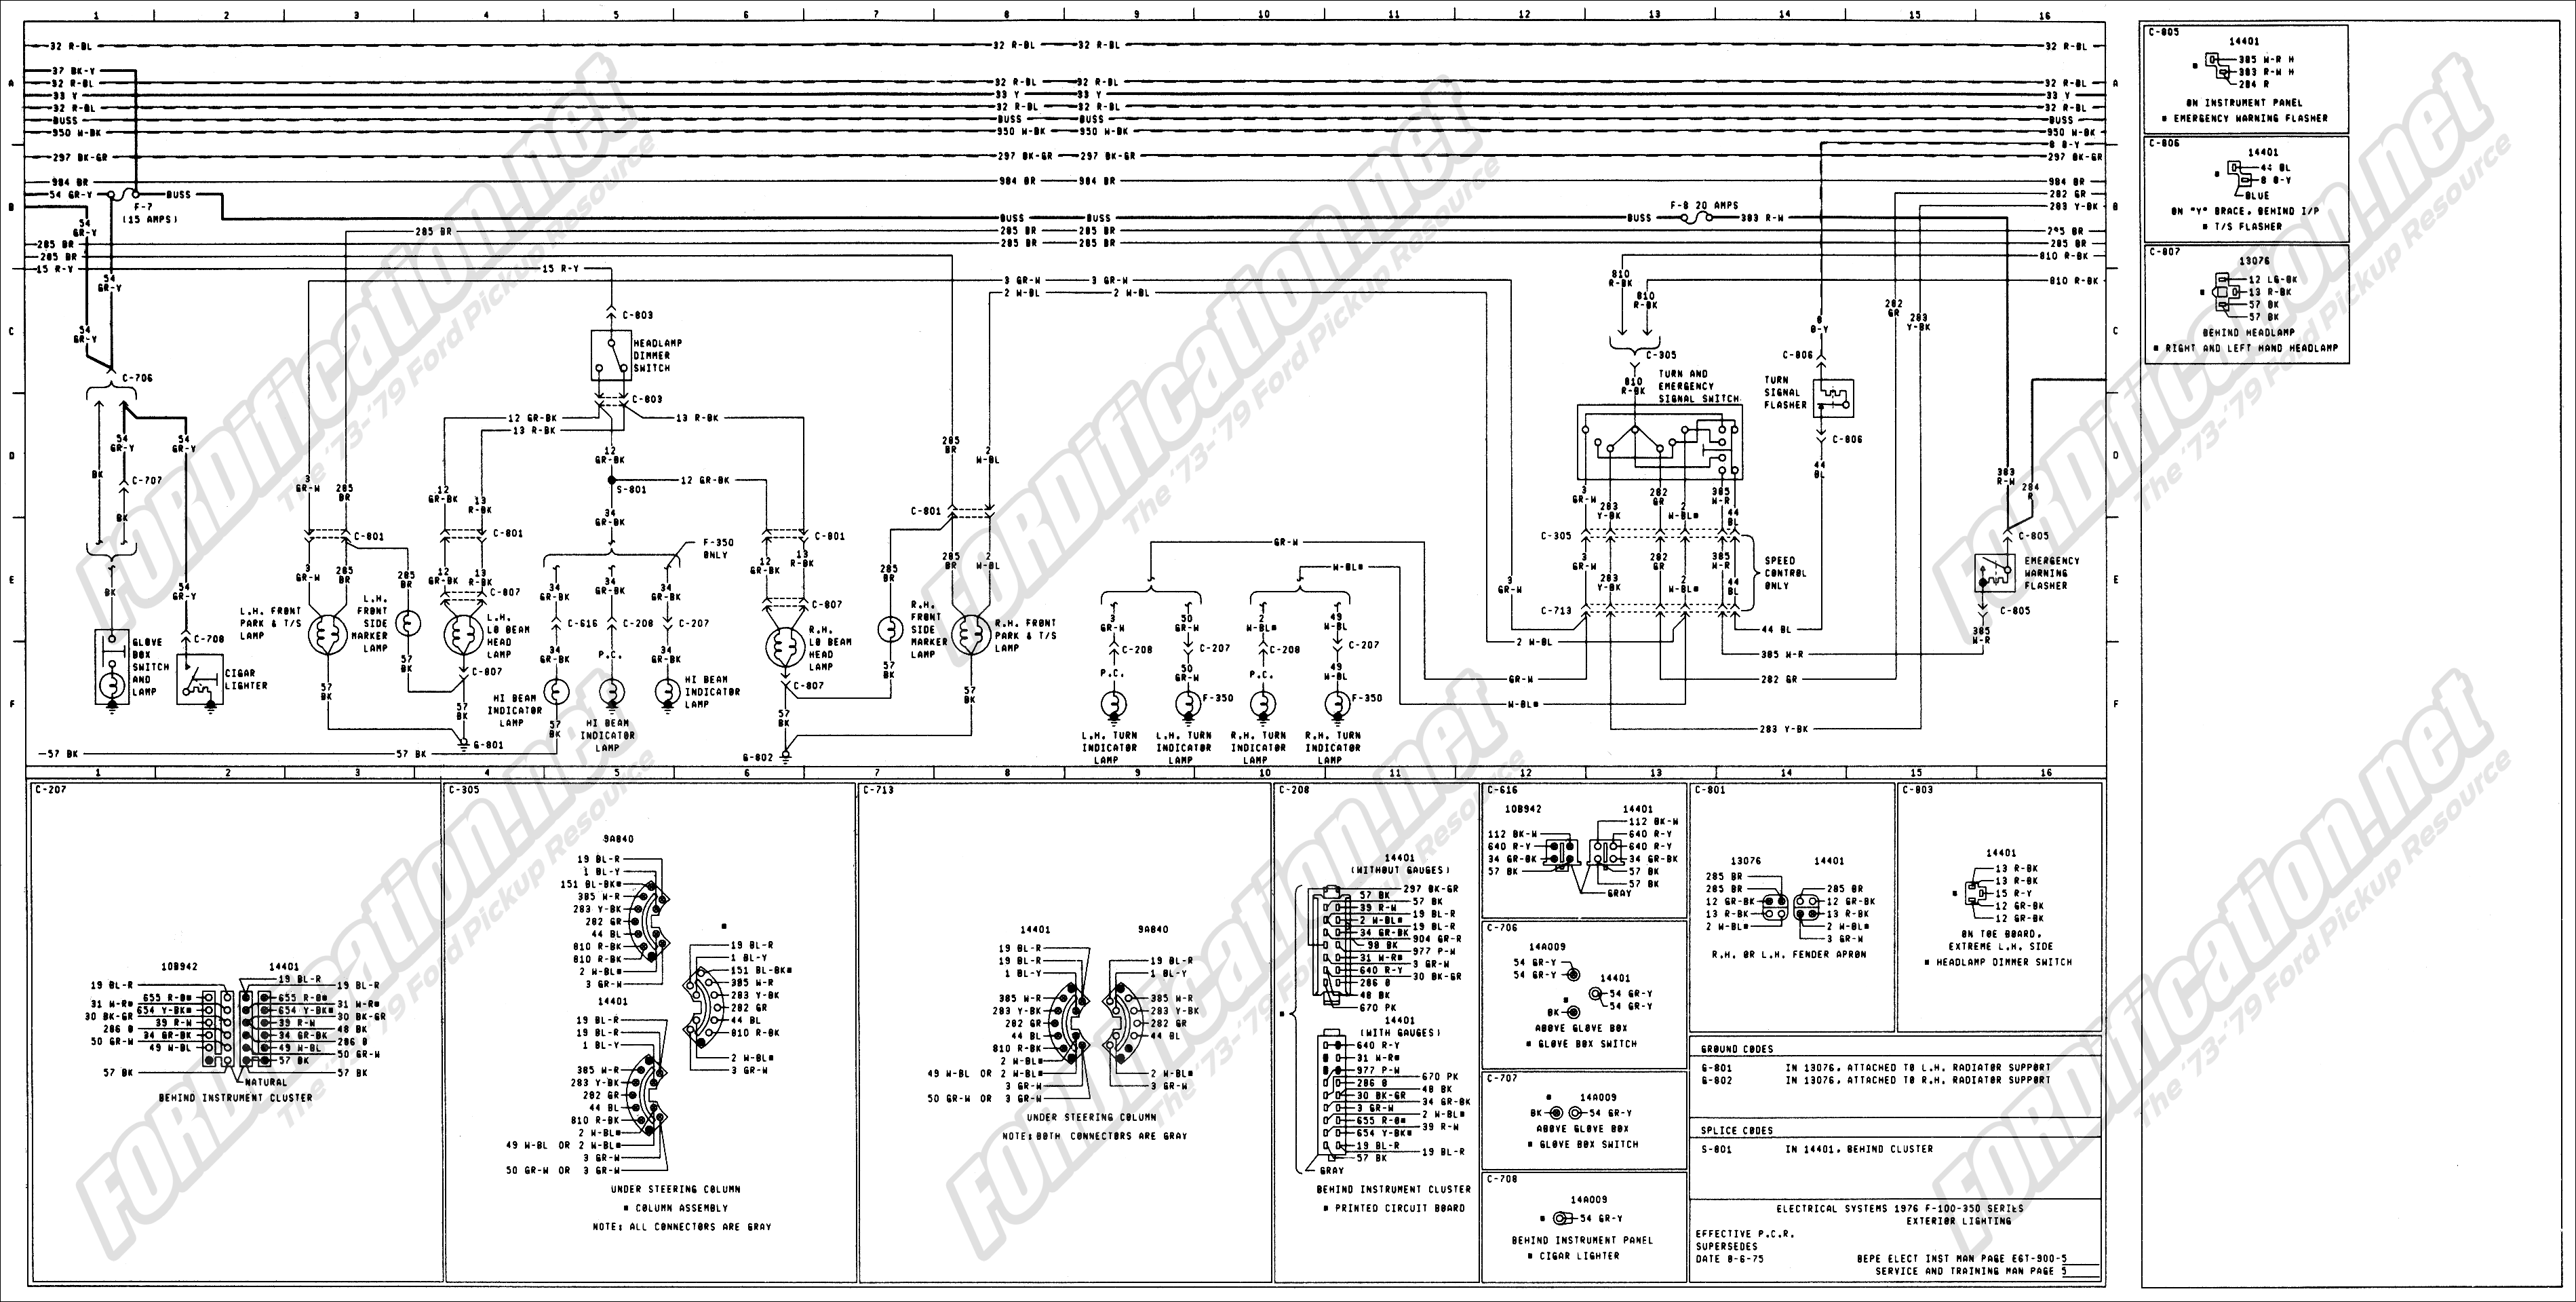 1973 1979 Ford Truck Wiring Diagrams & Schematics Fordification Net 1976  Ford Alternator Wiring Diagram 1975 Ford Truck Wiring Diagrams